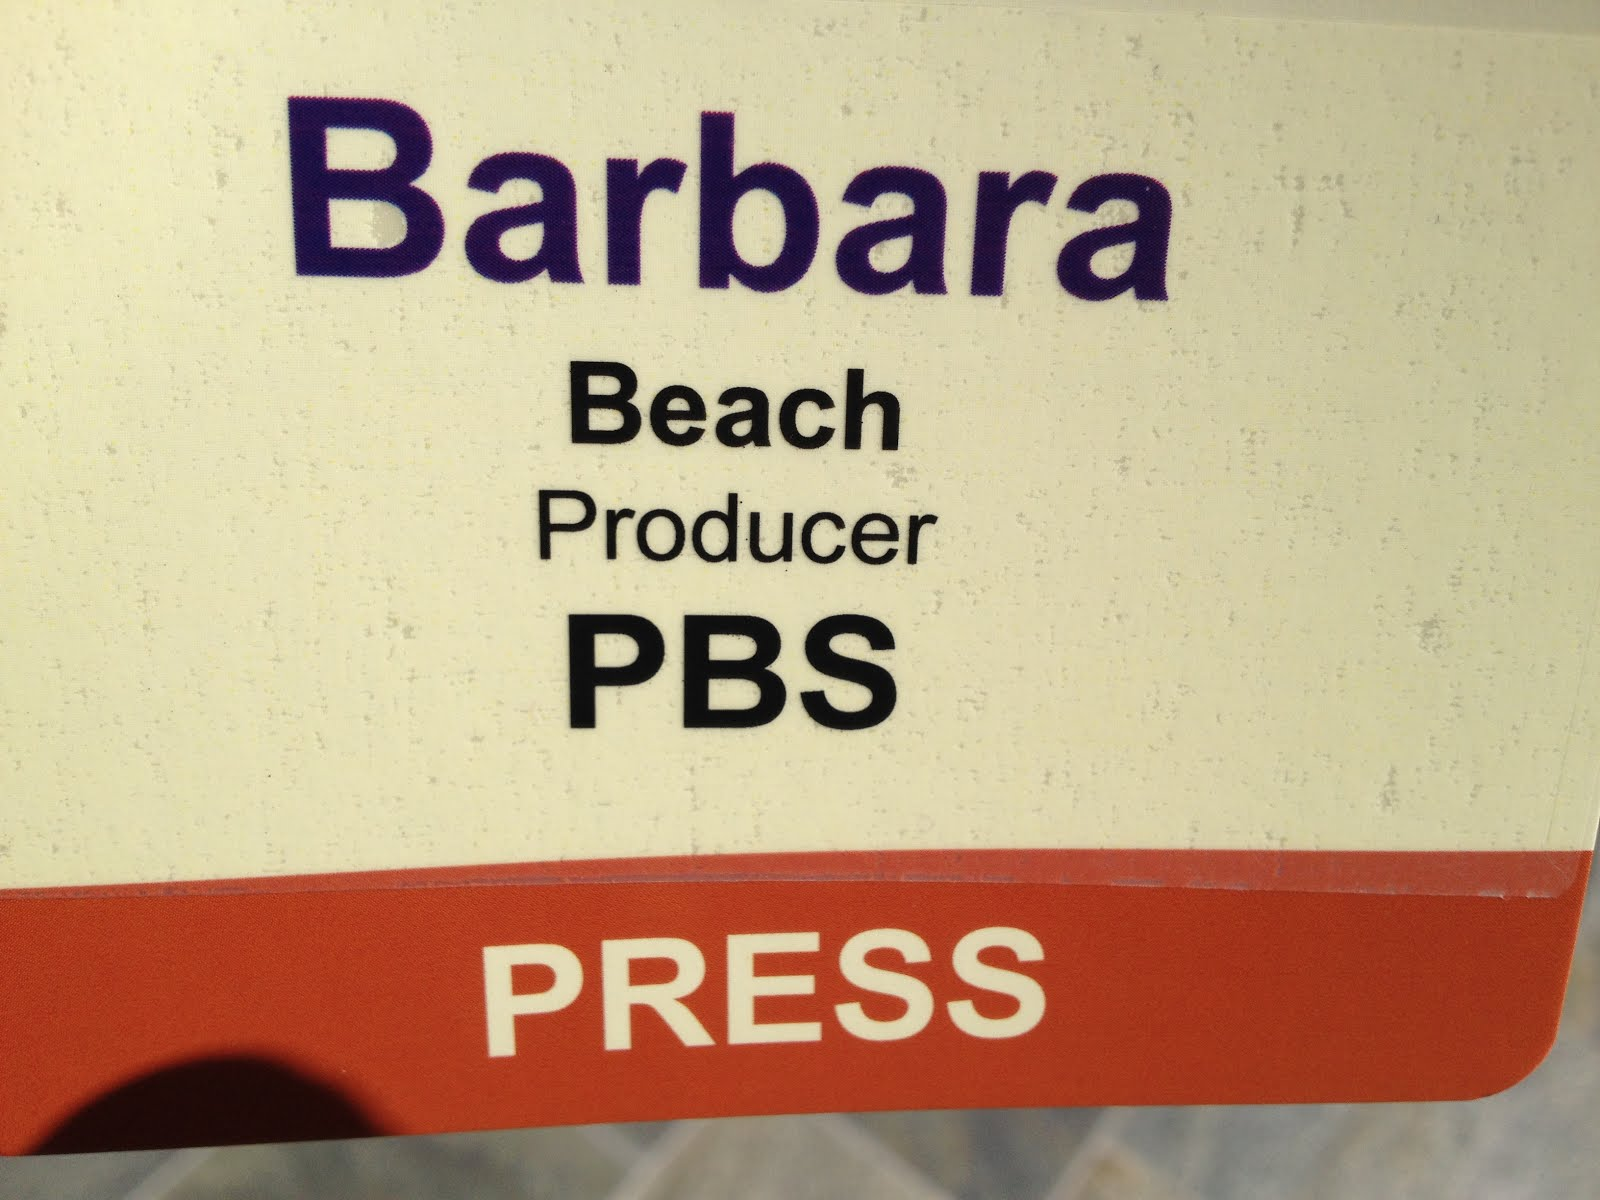 Proud to be a Part of PBS!